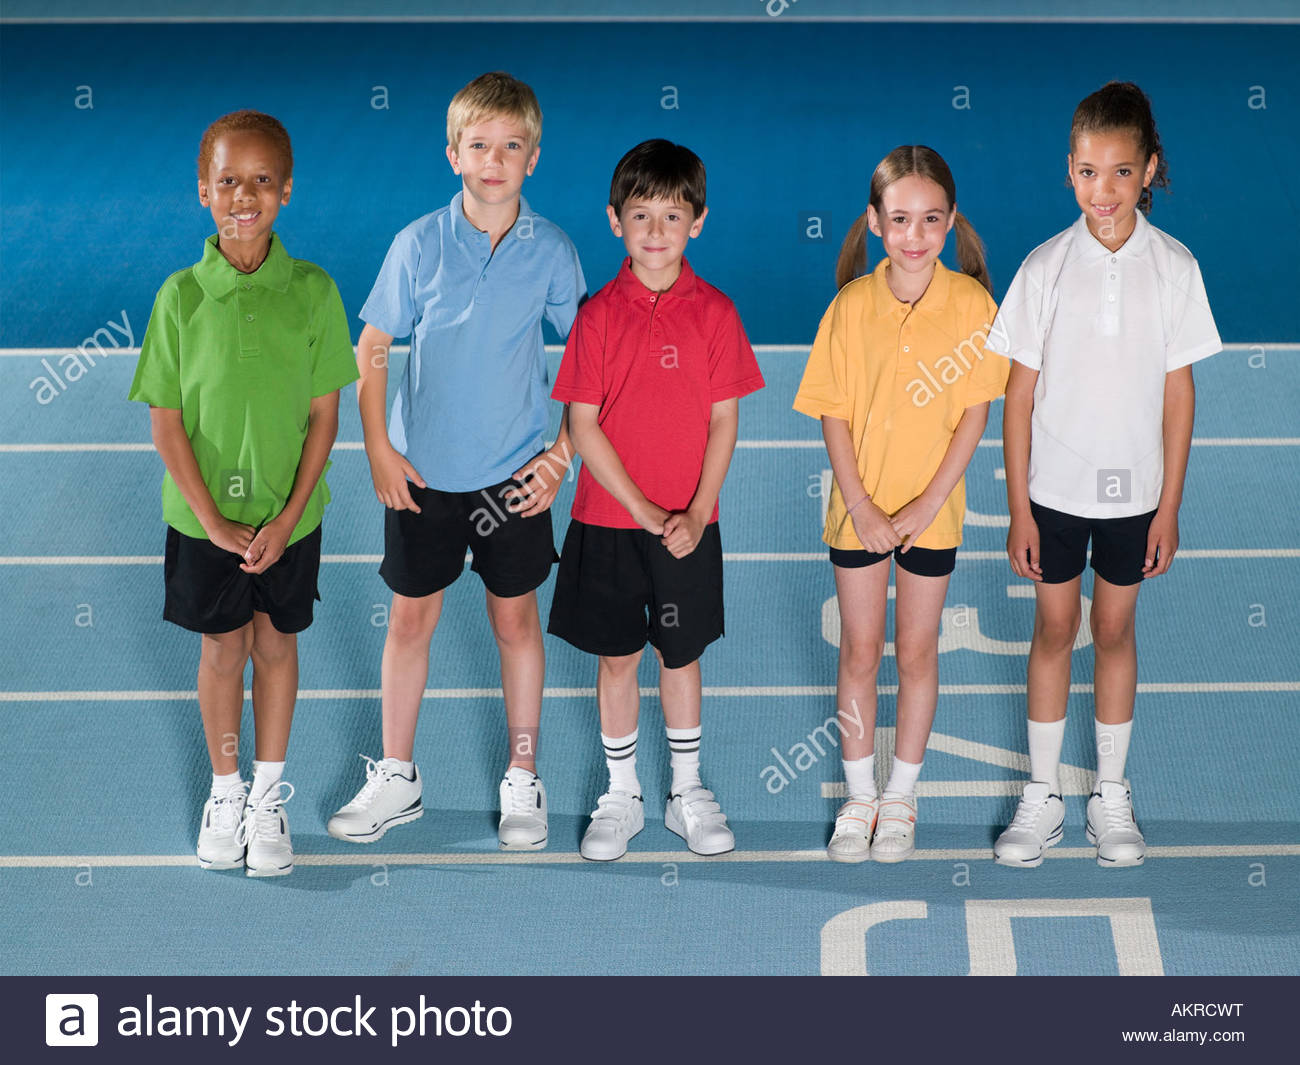 Children on running track - Stock Image